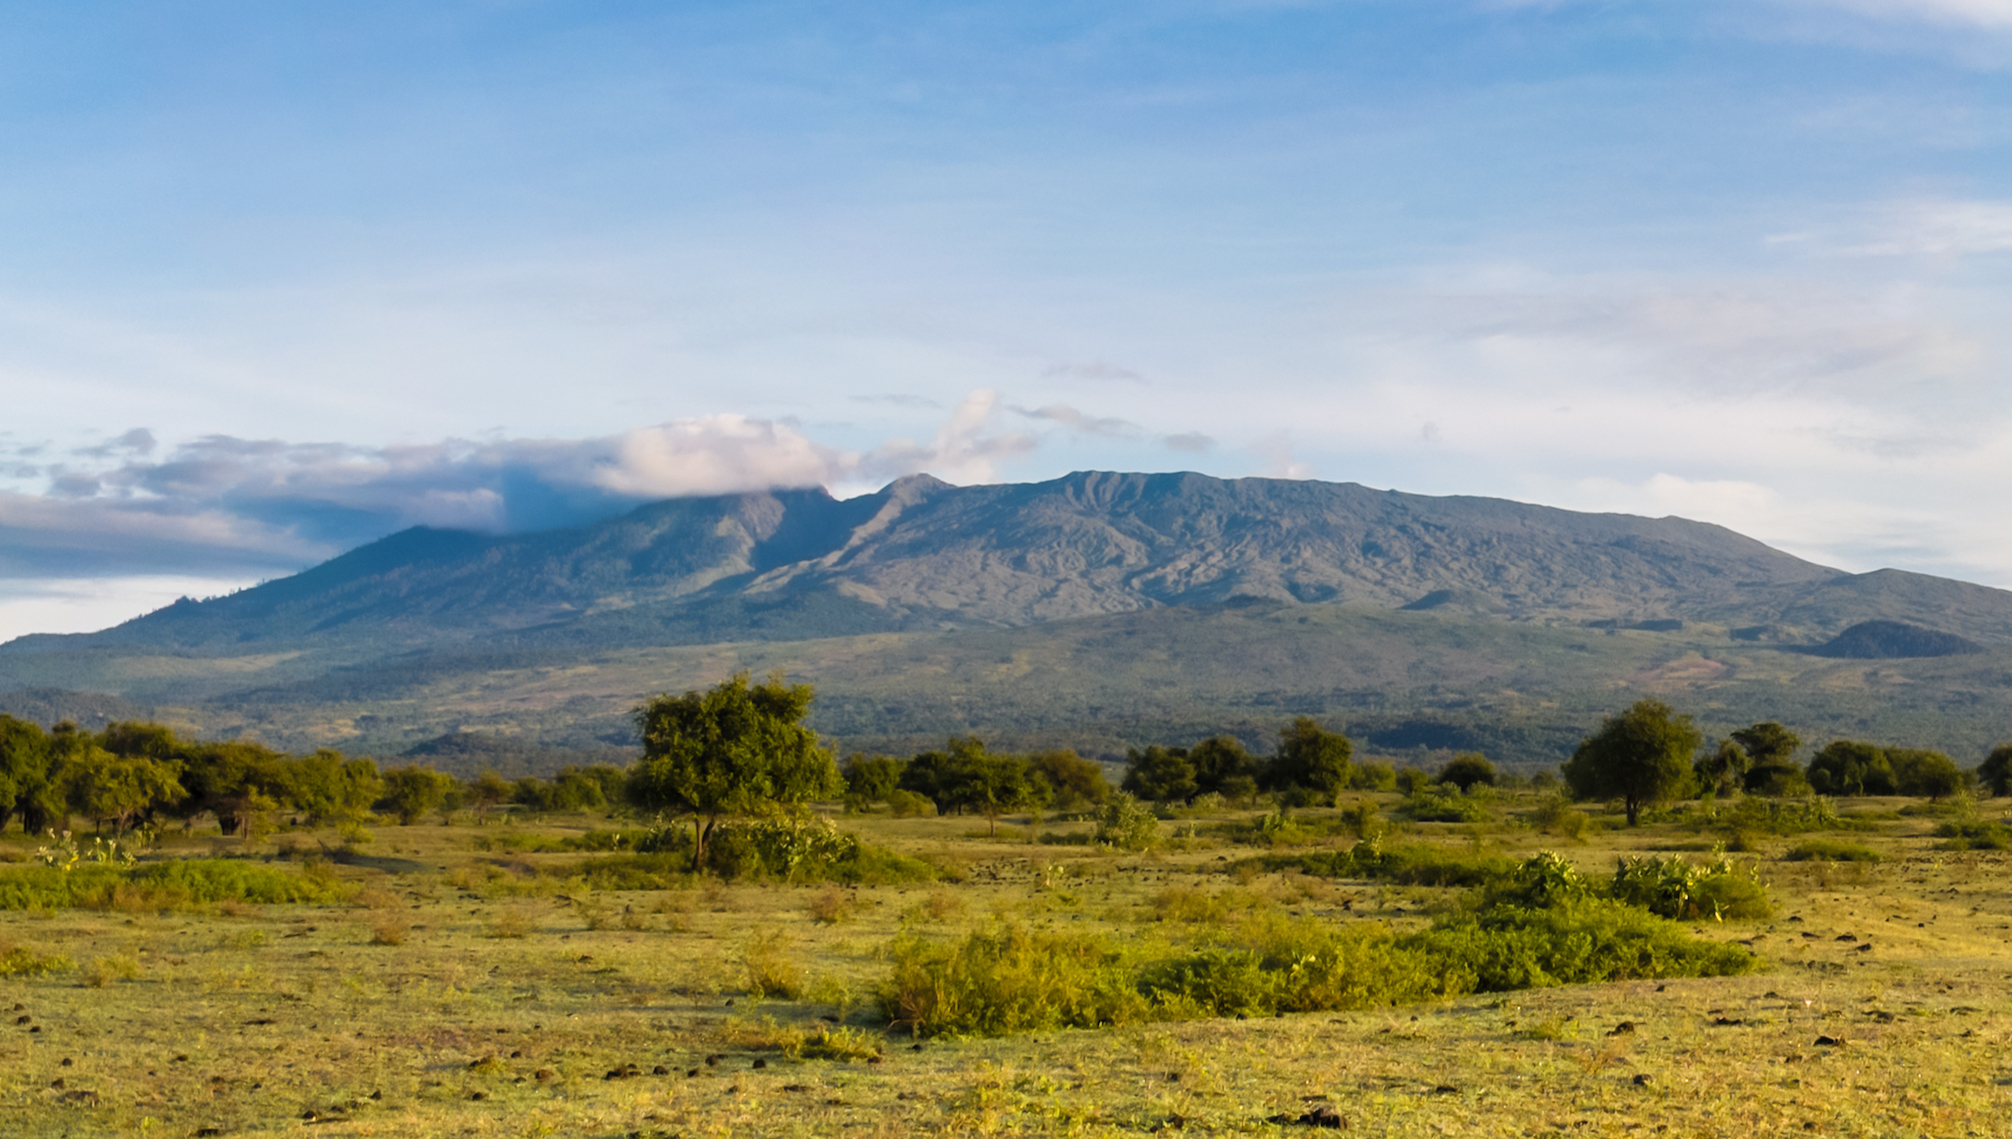 """The eruption of Mount Tambora was so destructive that it may have triggered what's referred to as the """"year without a summer"""" in 1816."""